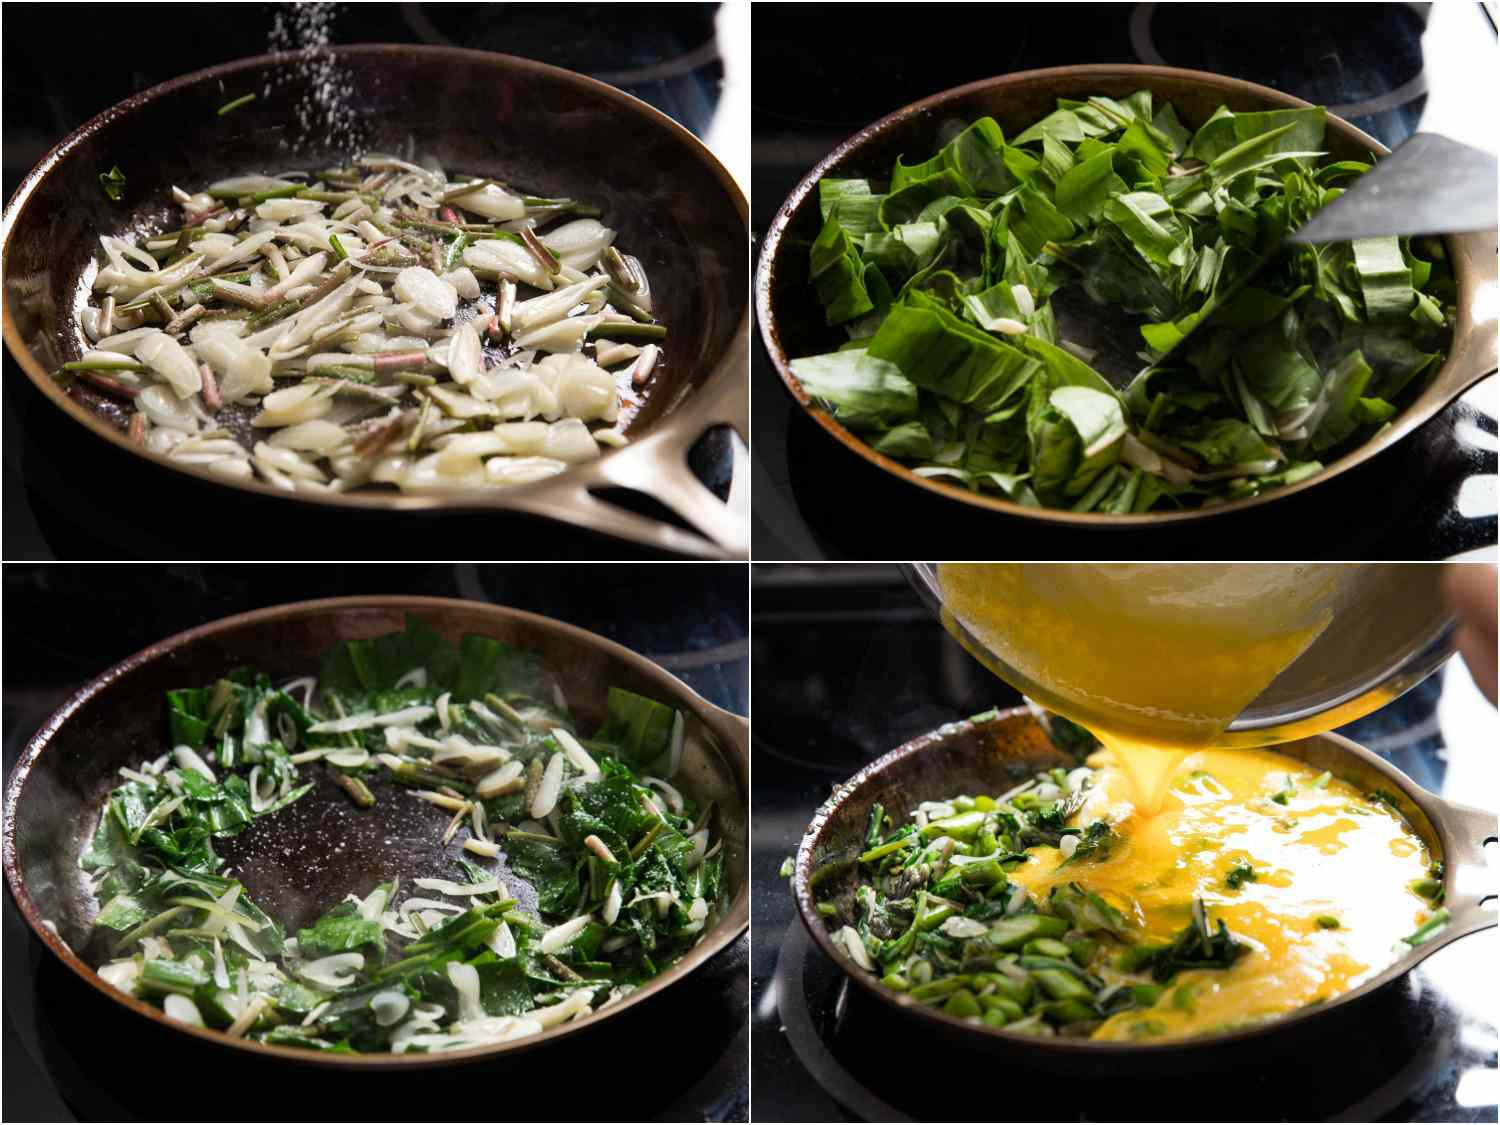 20160505-frittata-ramps-asparagus-fennel-vicky-wasik-collage.jpg